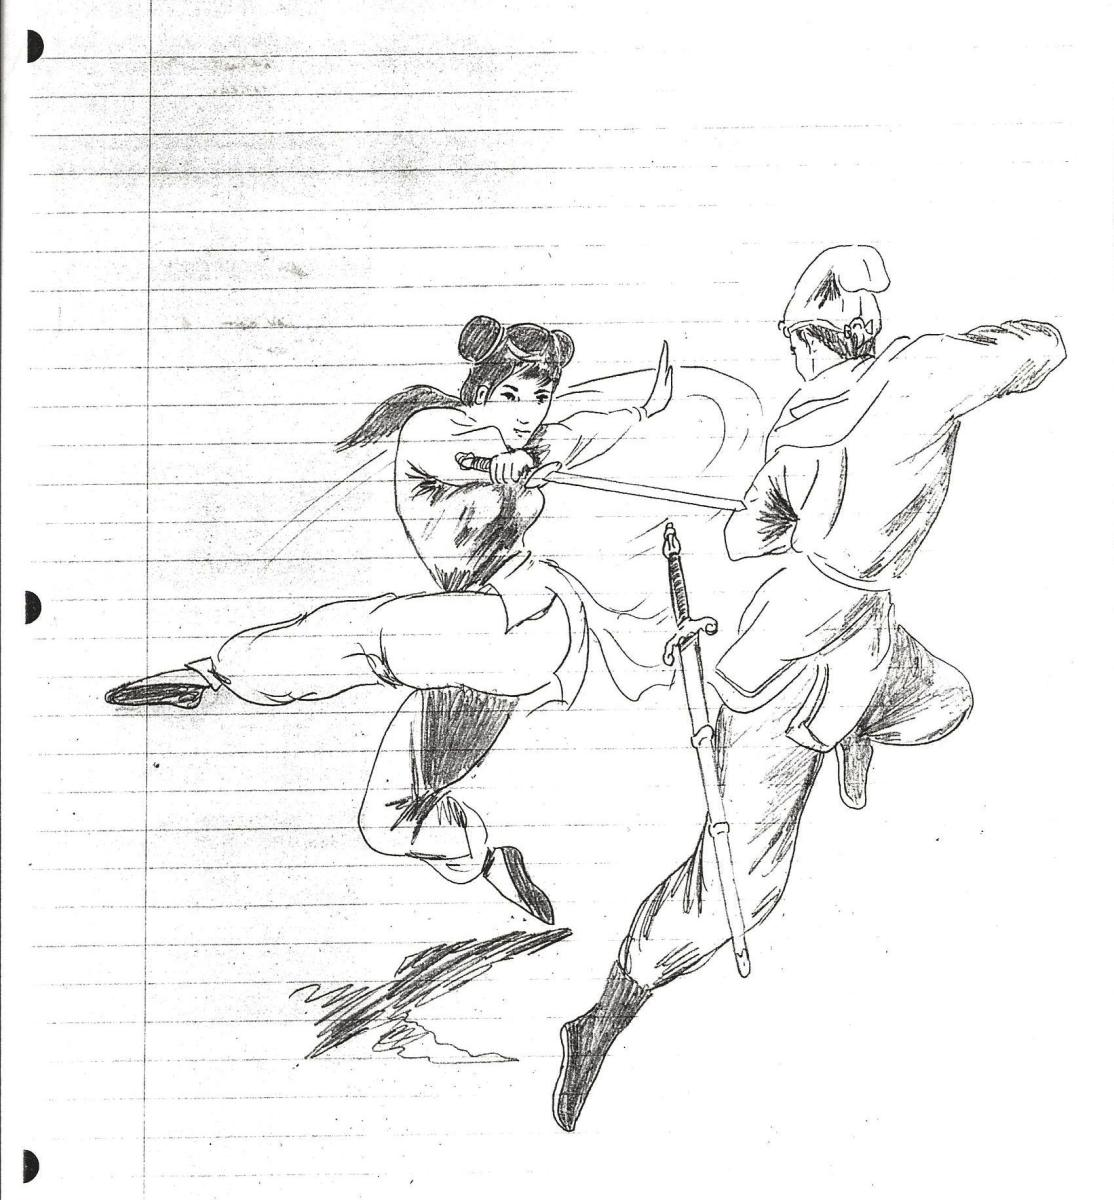 A Man and Woman Engaged In Combat by Bruce Lee